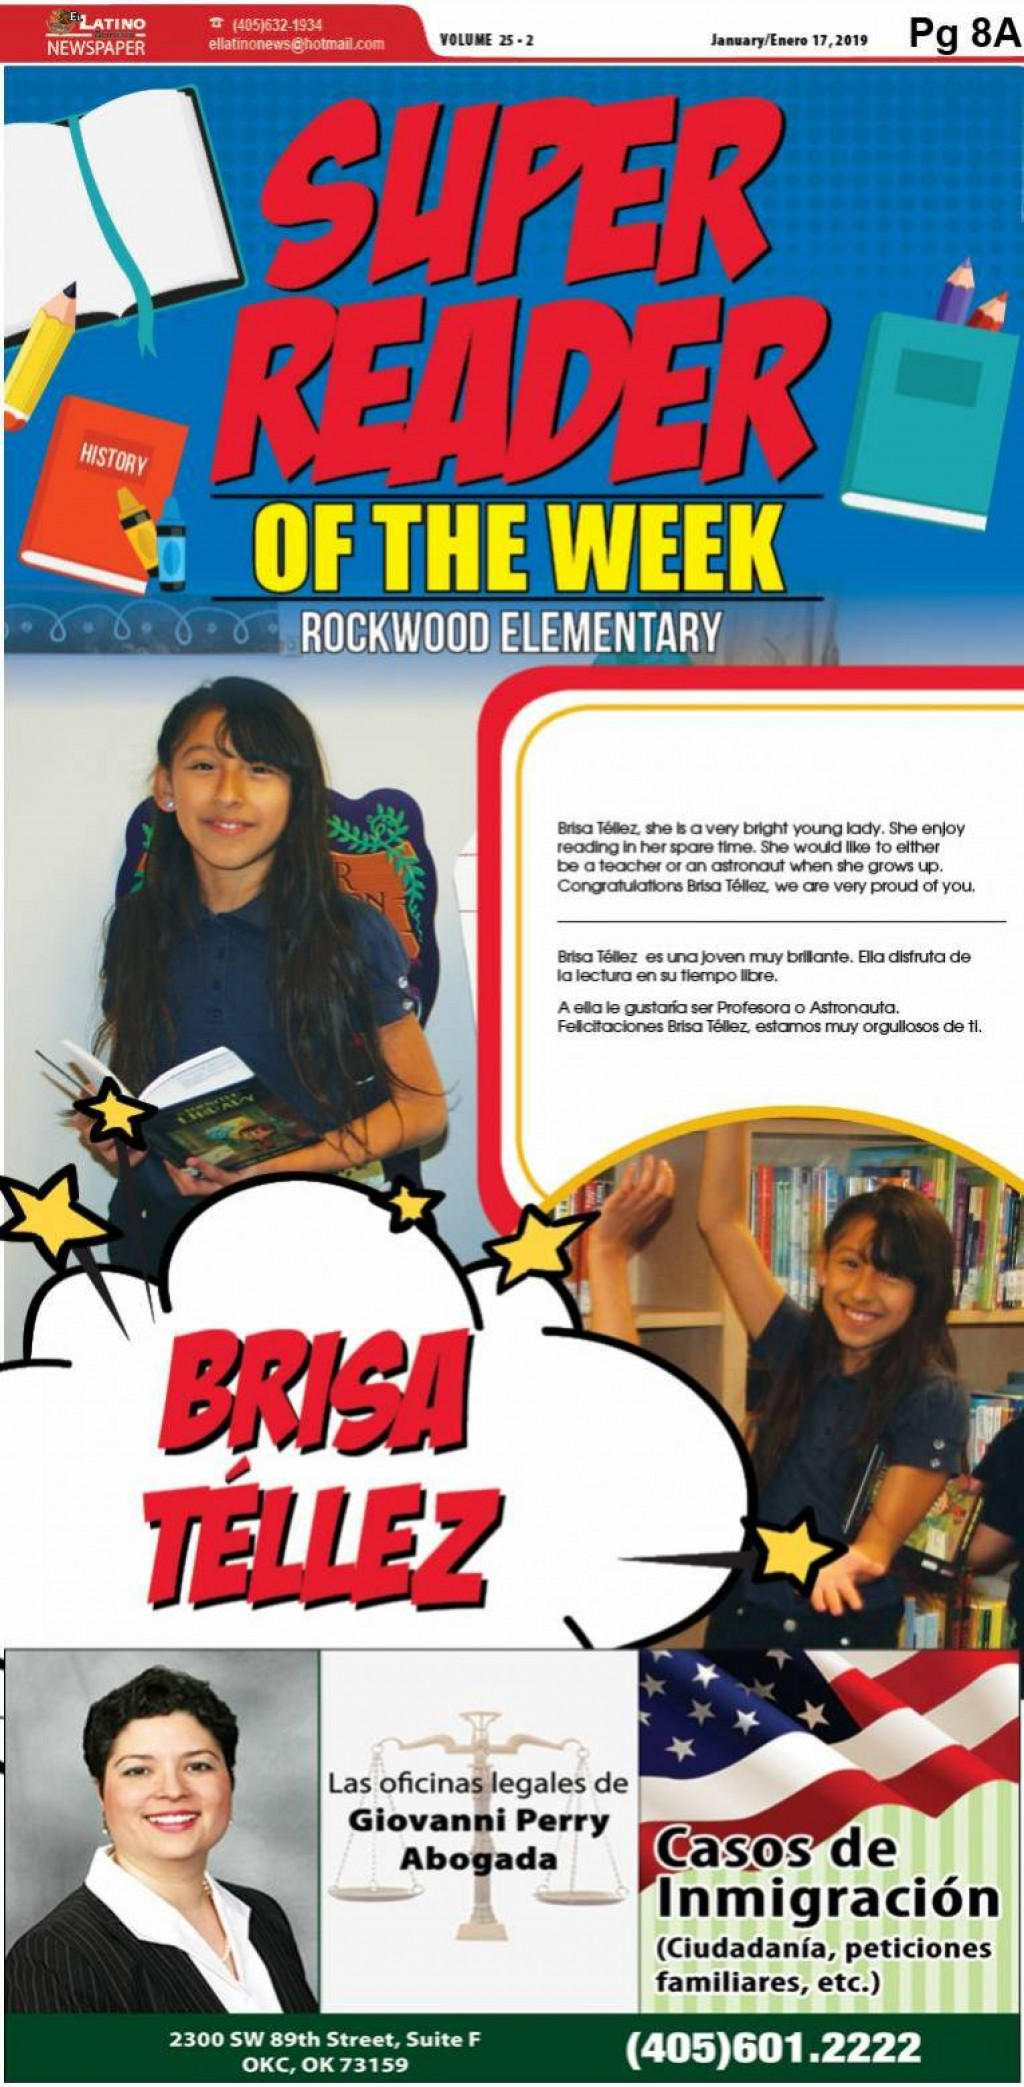 Super Reader of the Week: Brisa Téllez